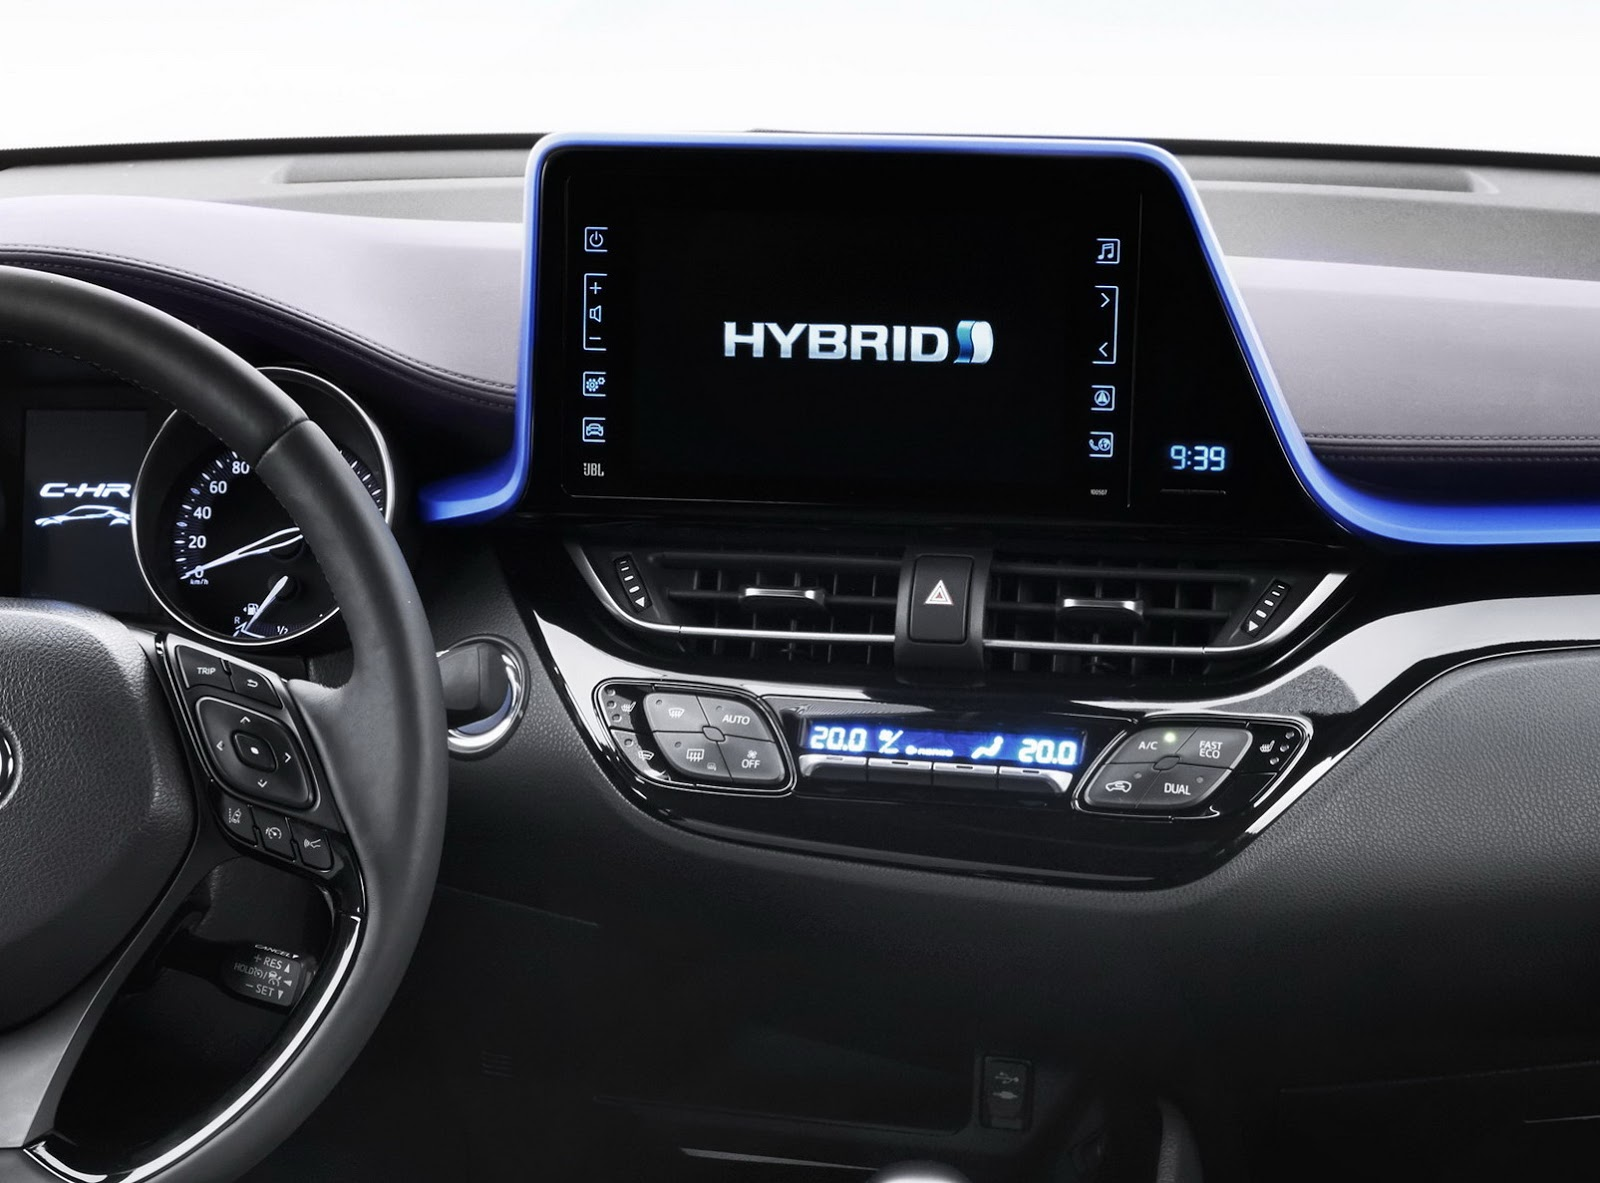 2017 Toyota C-HR Small Crossover's Interior Revealed [w/Video] | Carscoops